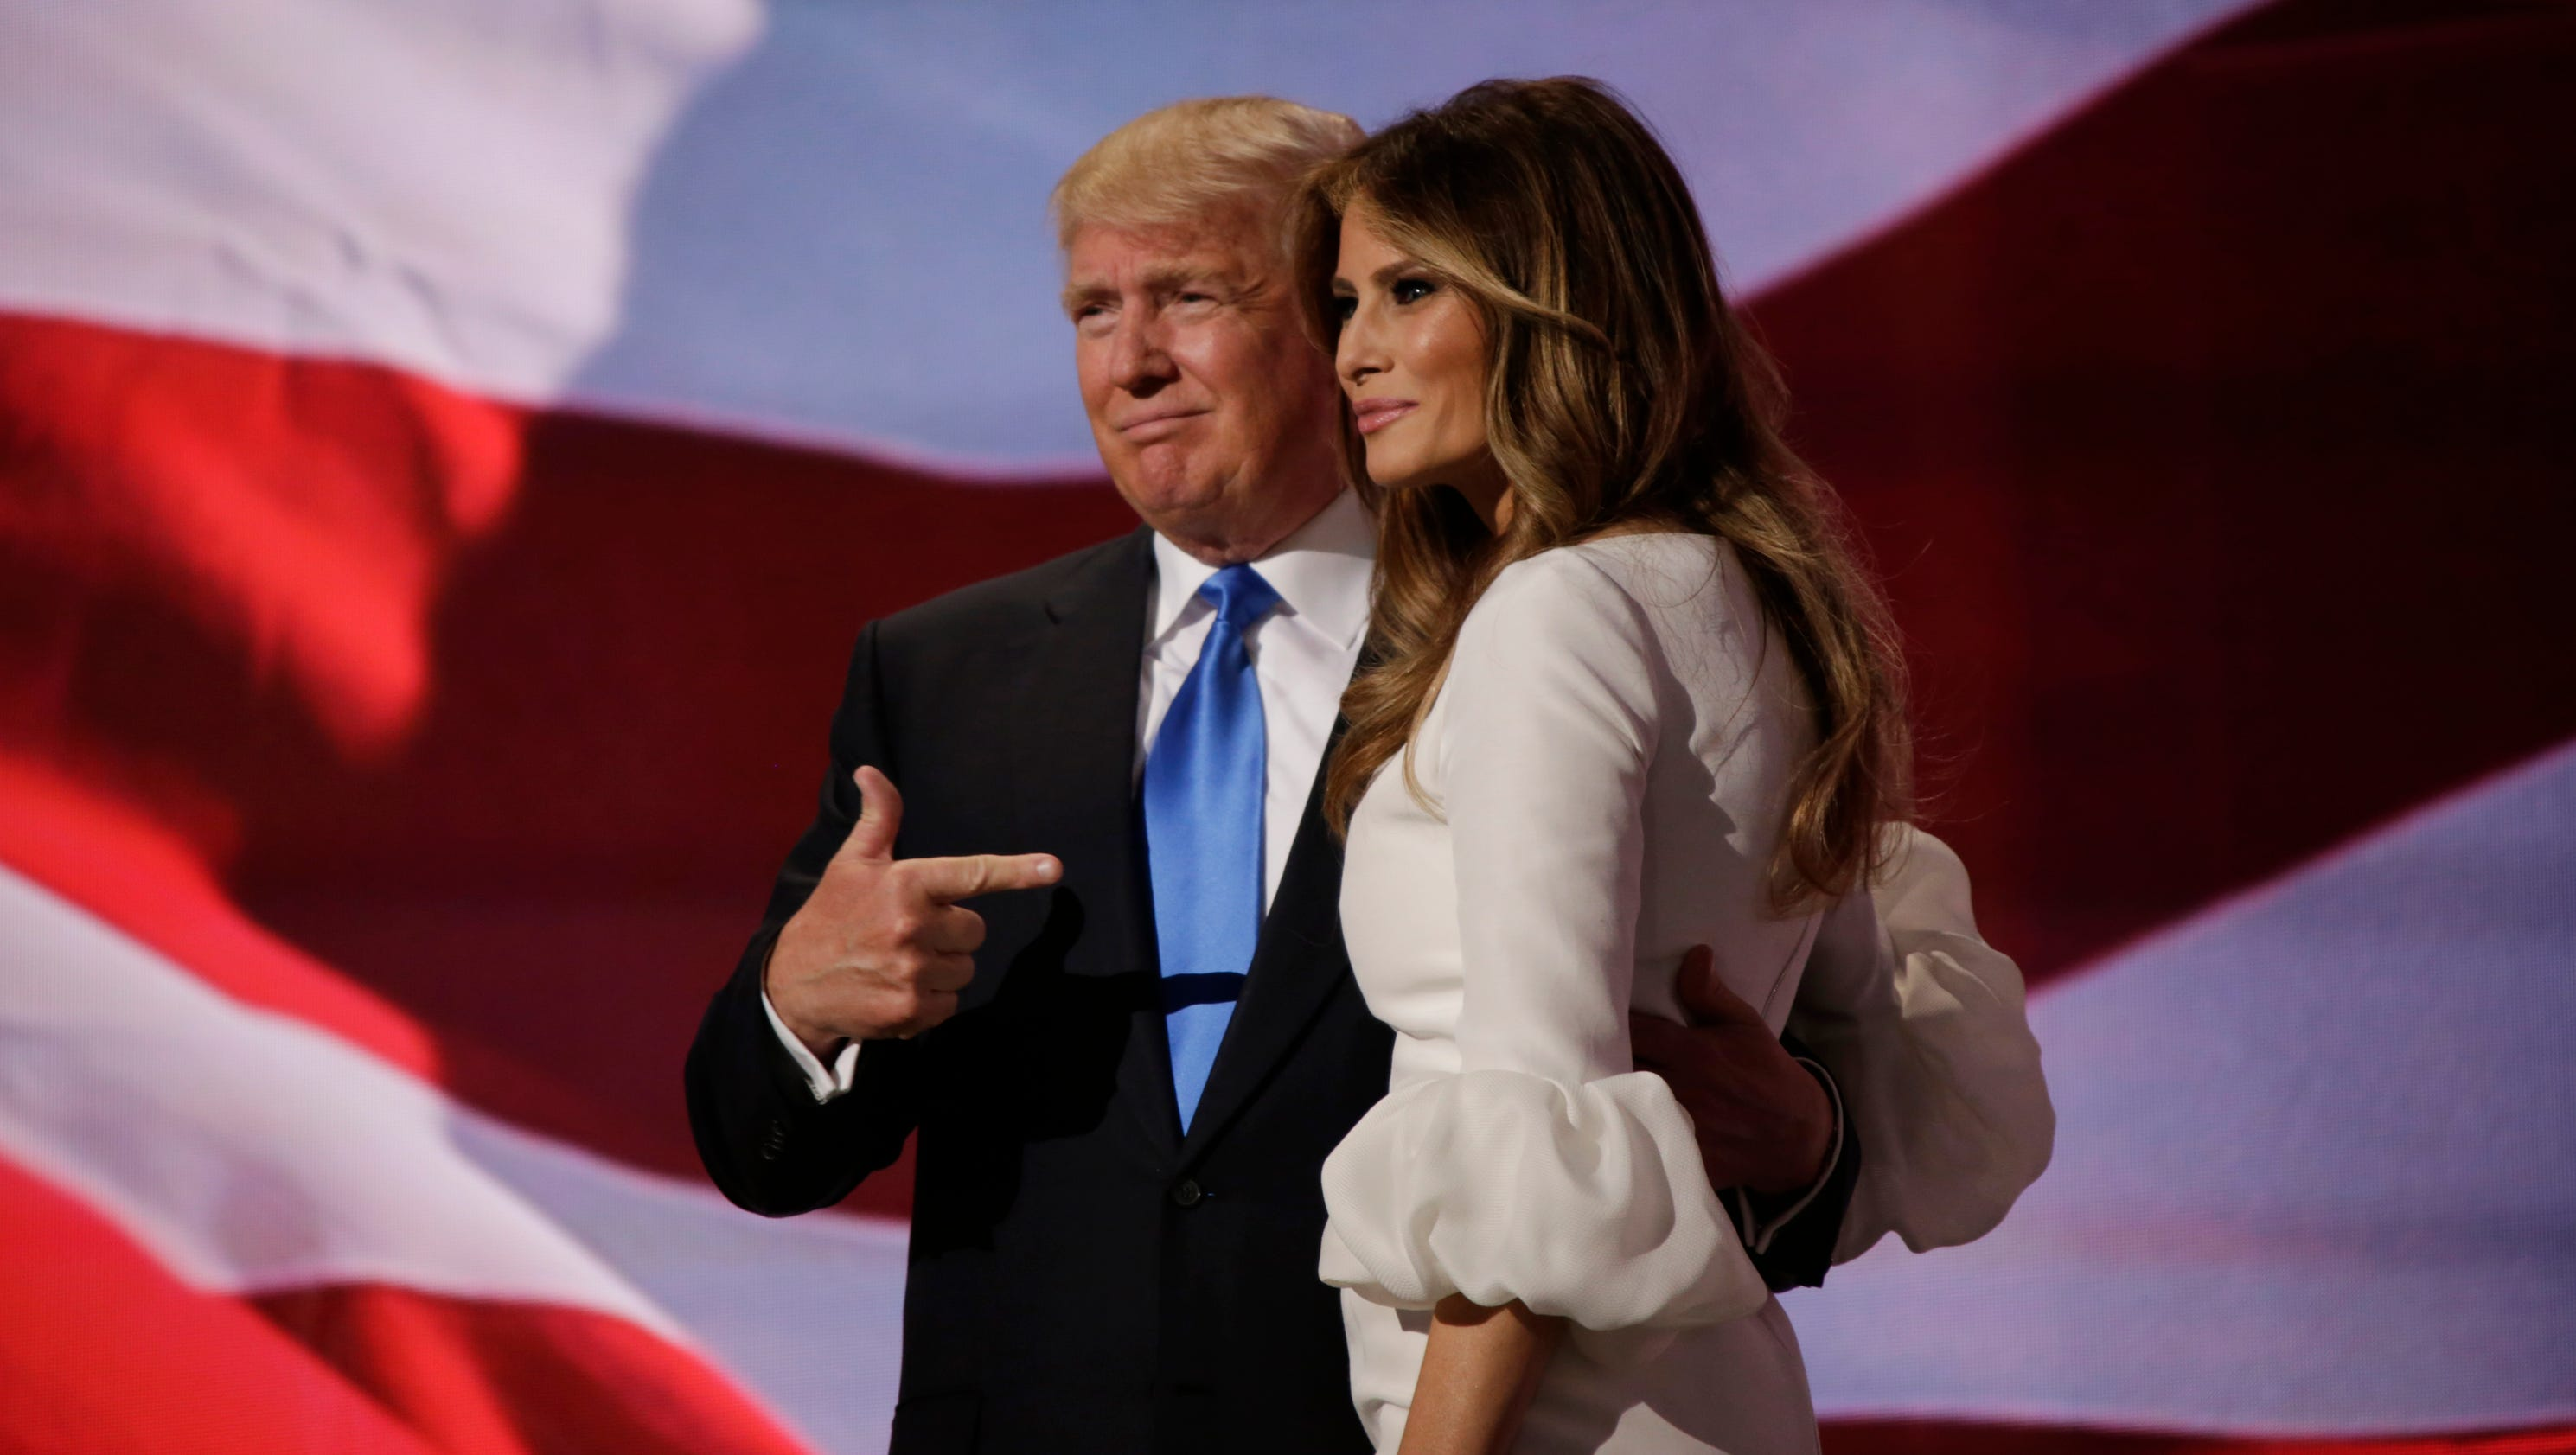 Trump introduces wife Melania to national audience ...